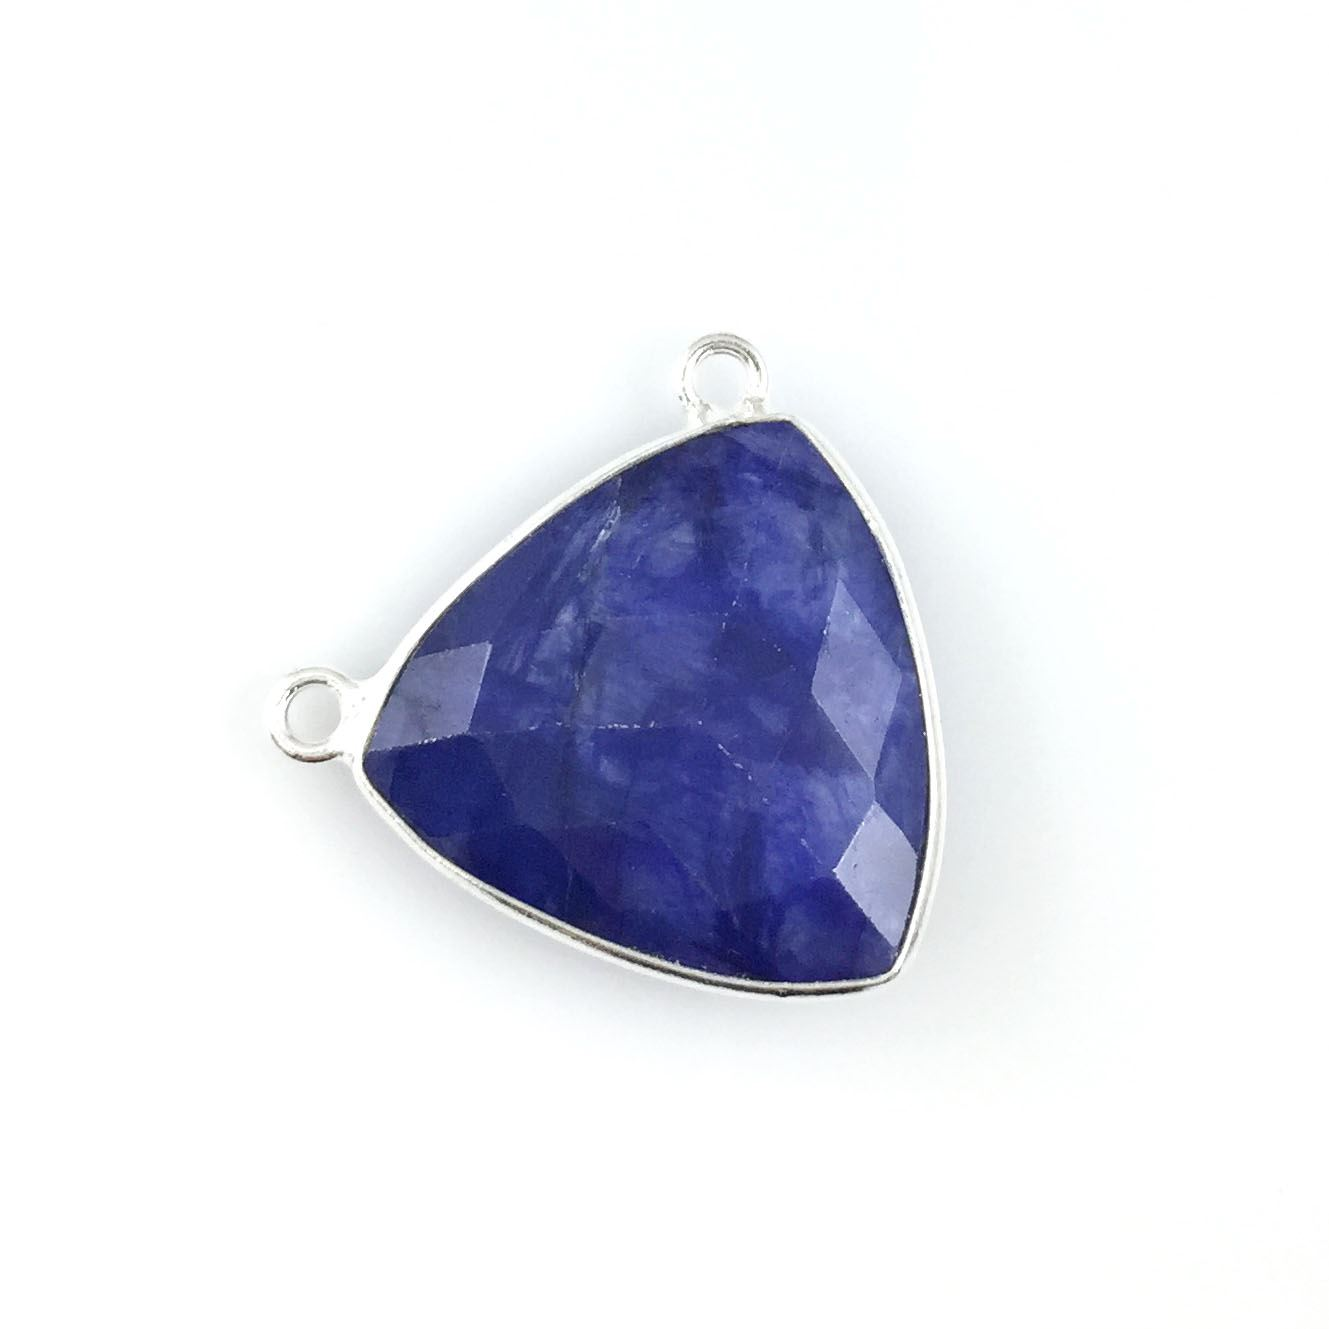 Bezel Gemstone Connector Pendant - Blue Sapphire Dyed - Sterling Silver - Large Trillion Shaped Faceted - 18 mm - 1 piece